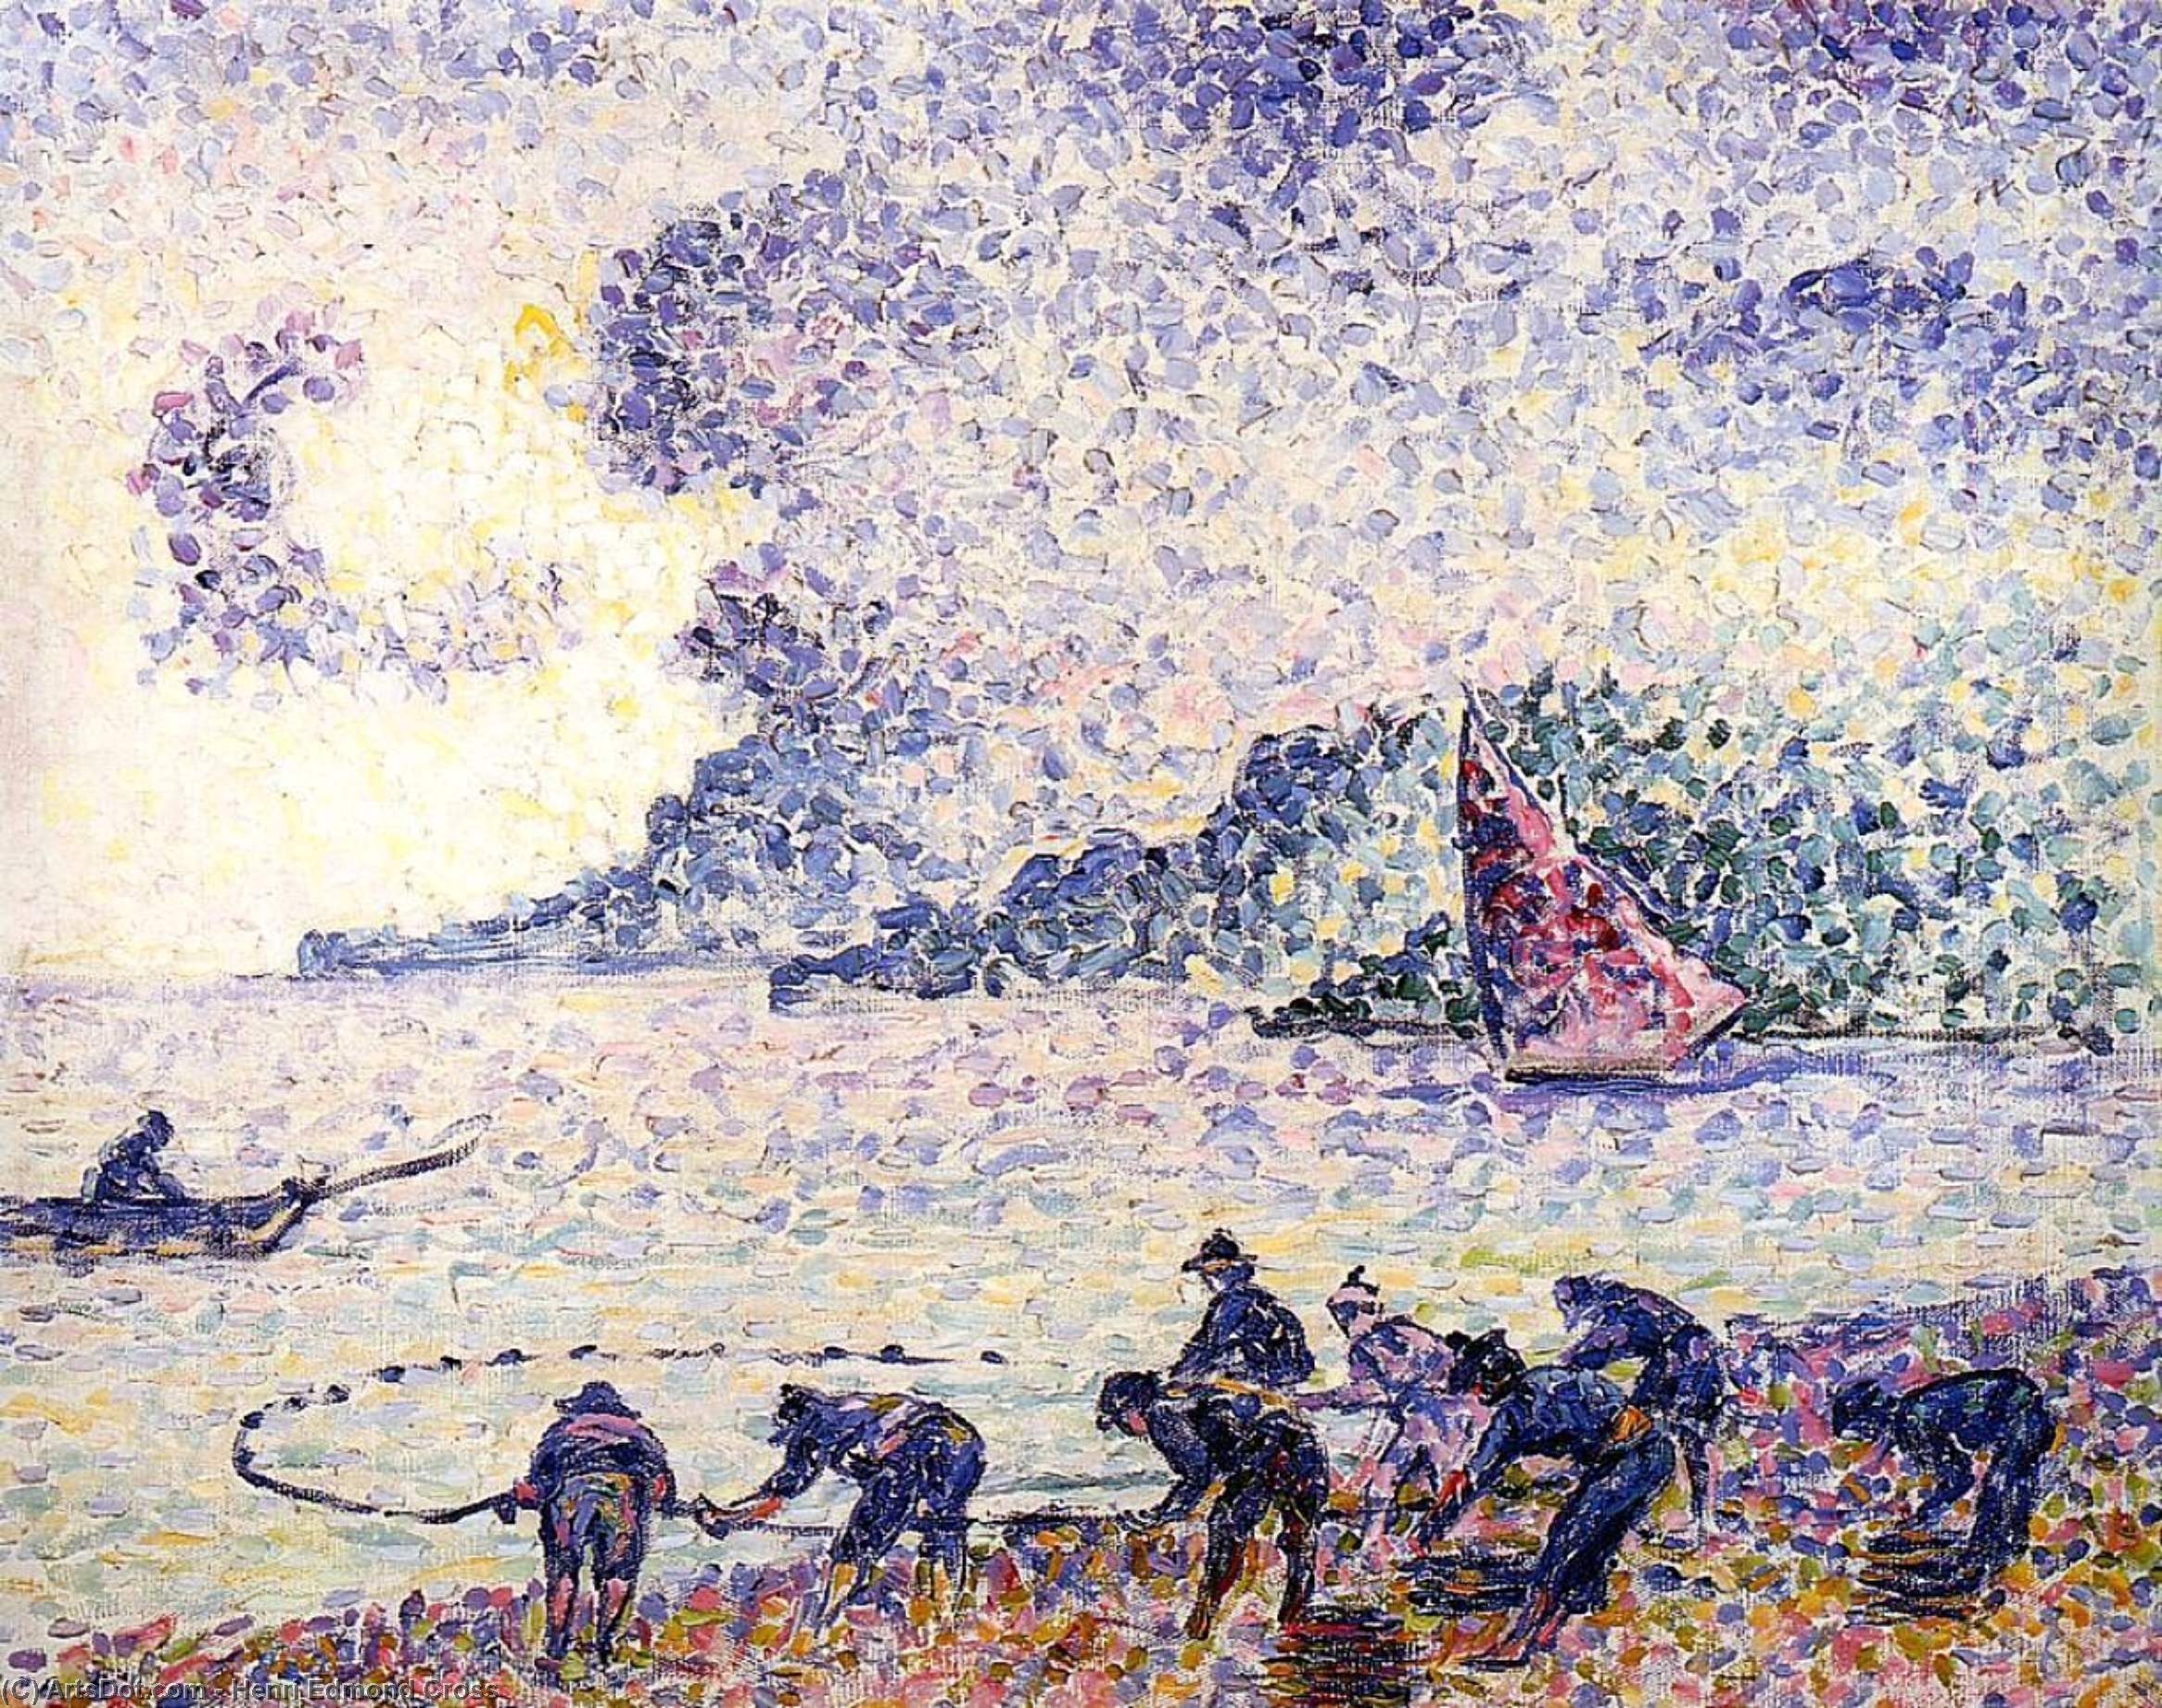 Fisherman, Oil On Canvas by Henri Edmond Cross (1856-1910, France)